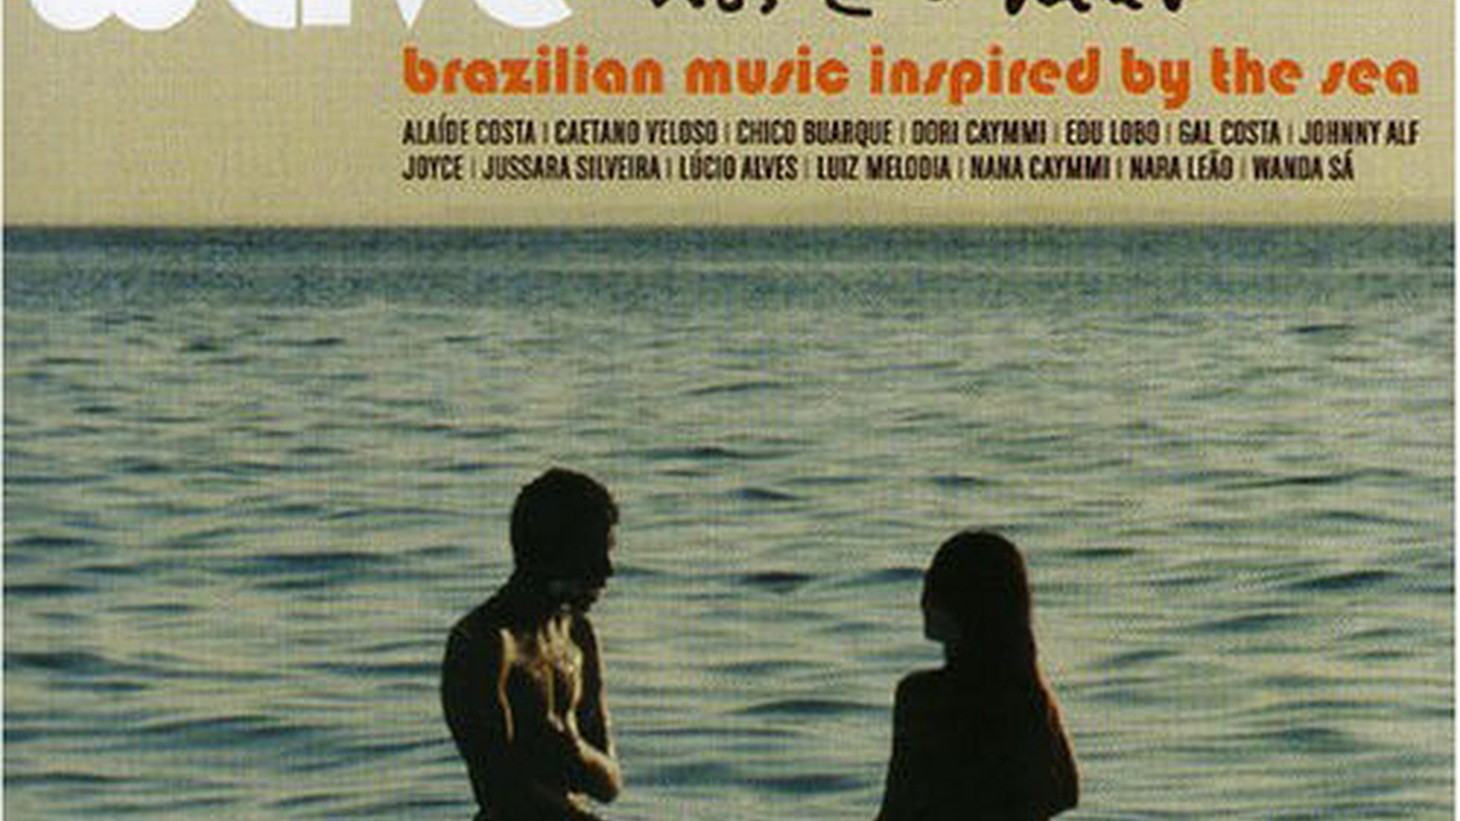 A potpourri of music from saxophonist Owen Broder, bass virtuoso Richard Bona, reedman Cleave Guyton, Jr., plus three versions of a Brazilian spiritual anthem.